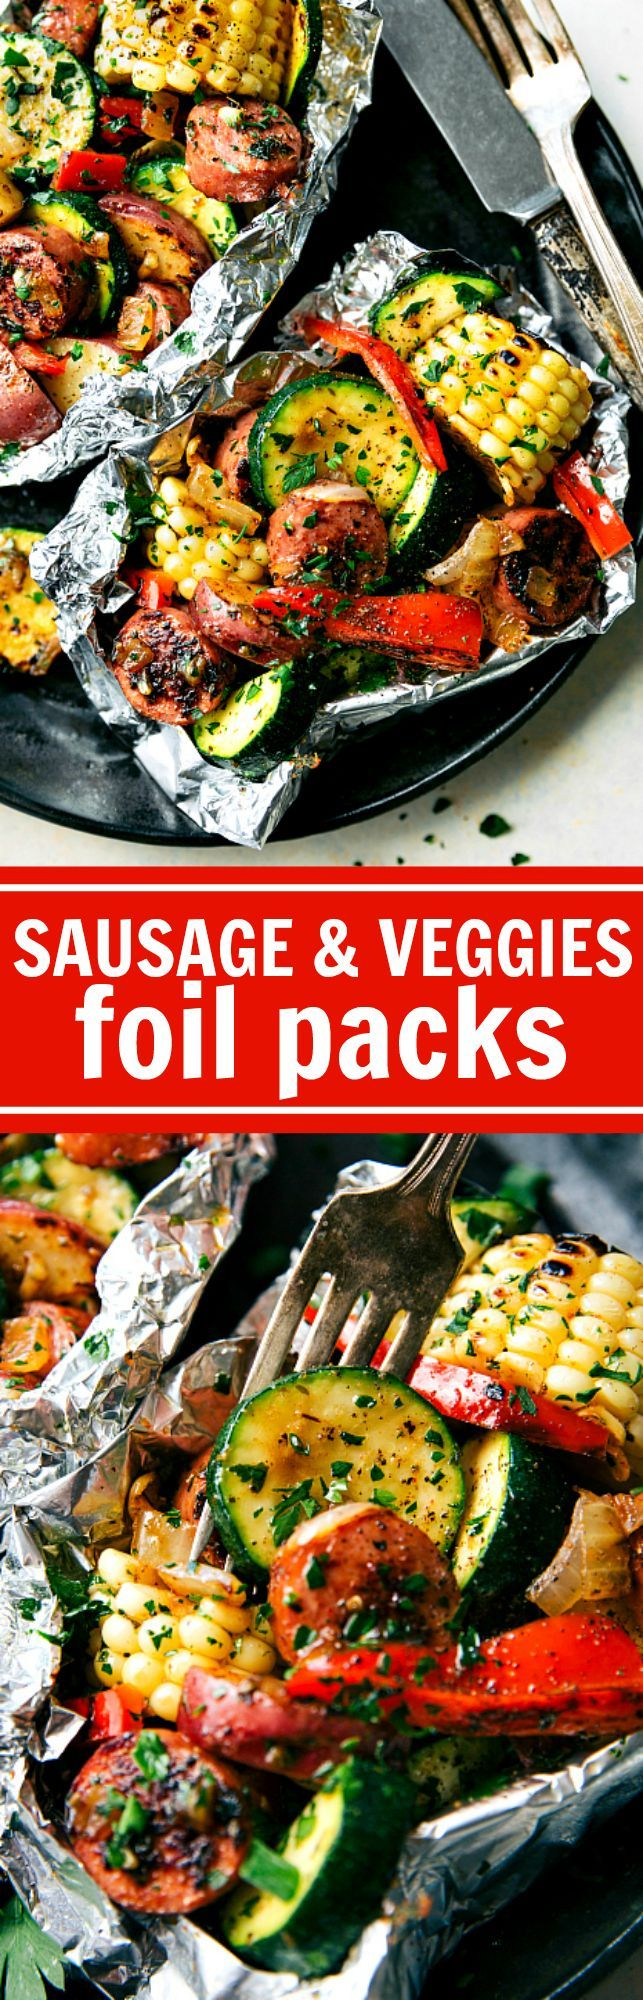 These delicious and easy tin foil packets are so quick to assemble! They are packed with sausage, tons of veggies, and the very best seasoning mix. Recipe from http://chelseasmessyapron.com